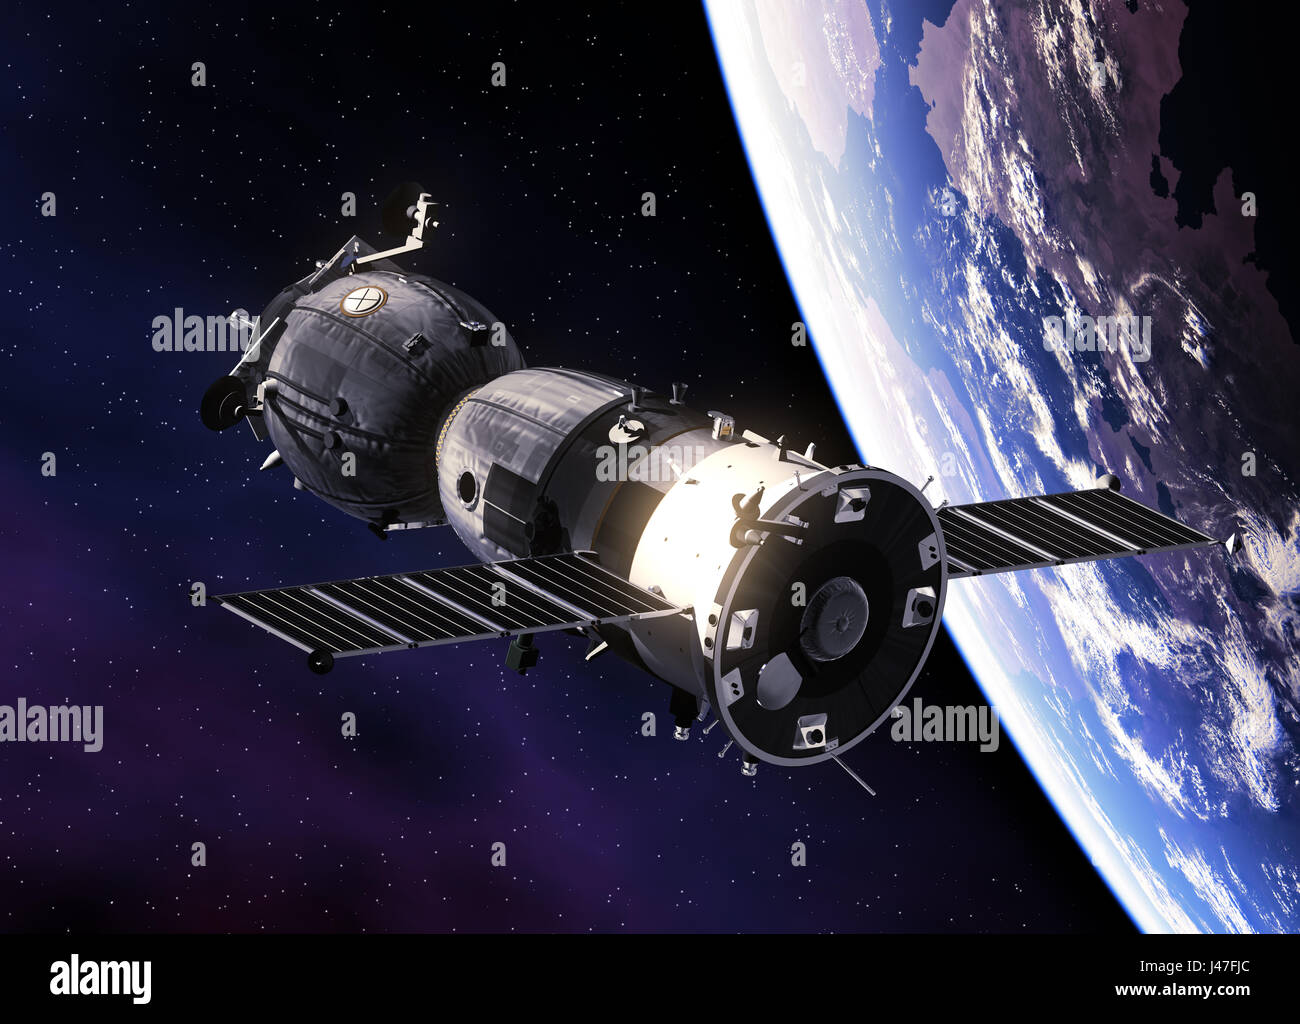 Russian Spacecraft Orbiting Earth - Stock Image